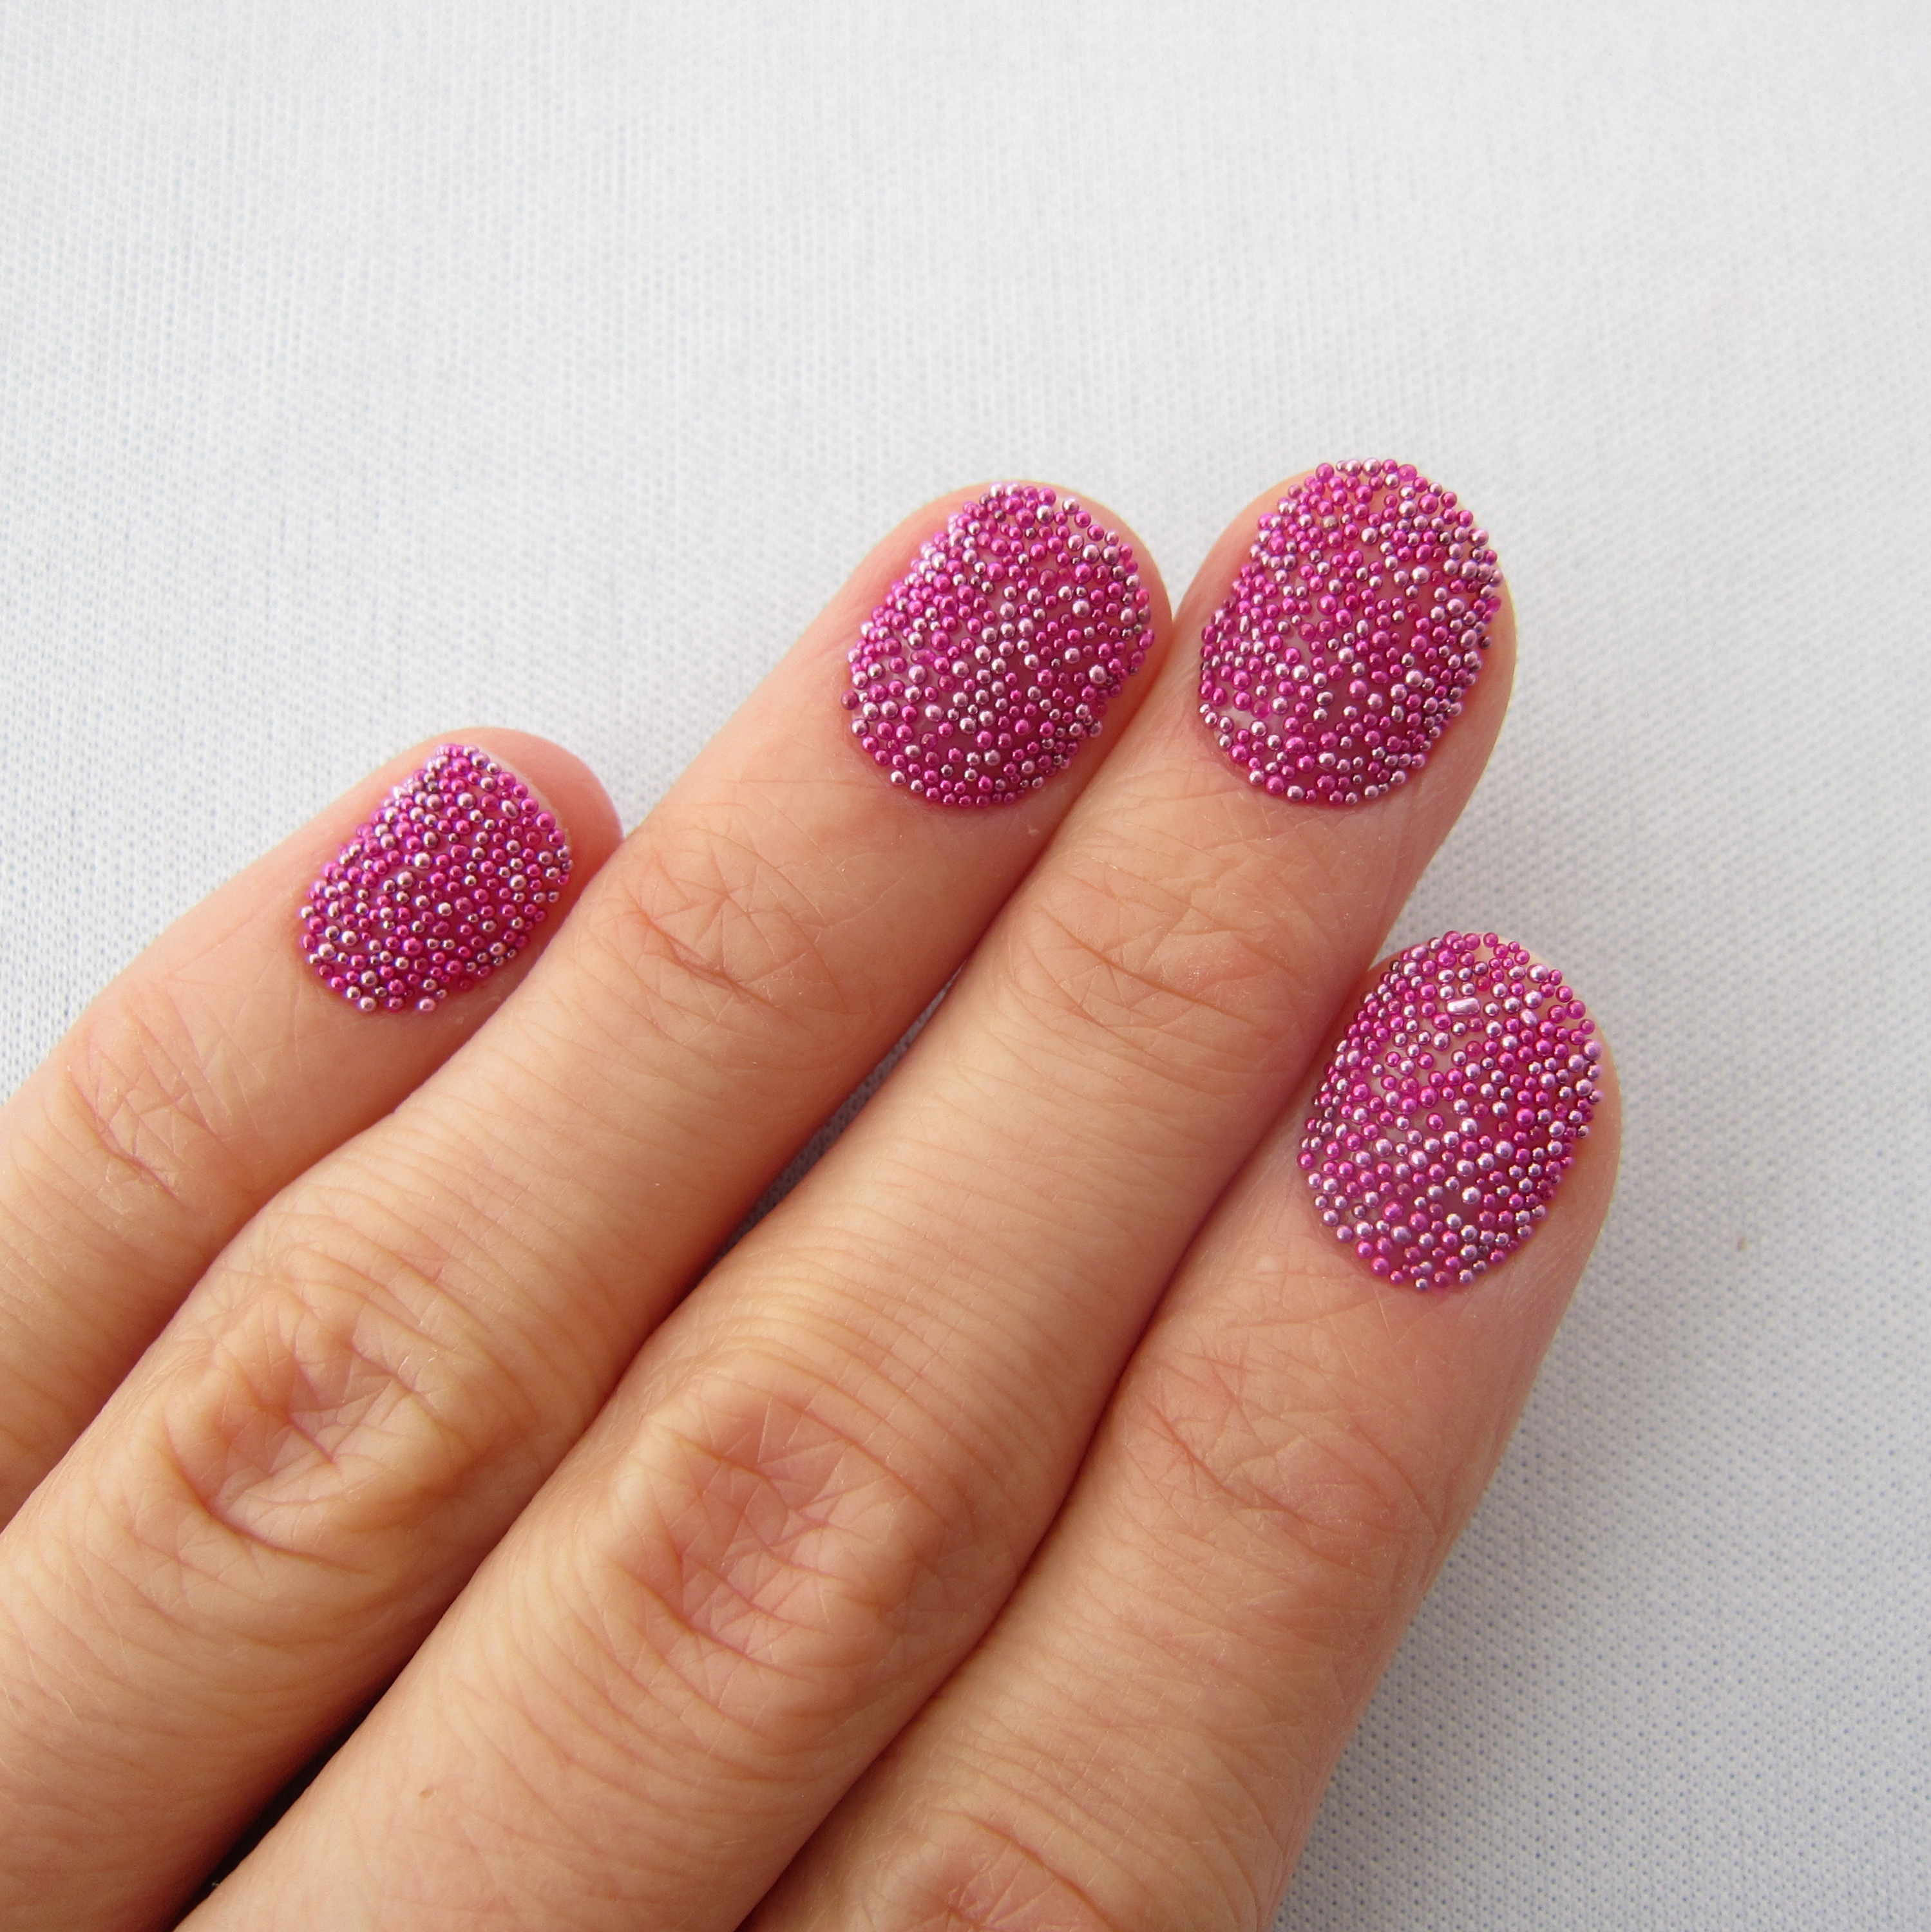 Picture of Caviar Nails - a Good Idea?